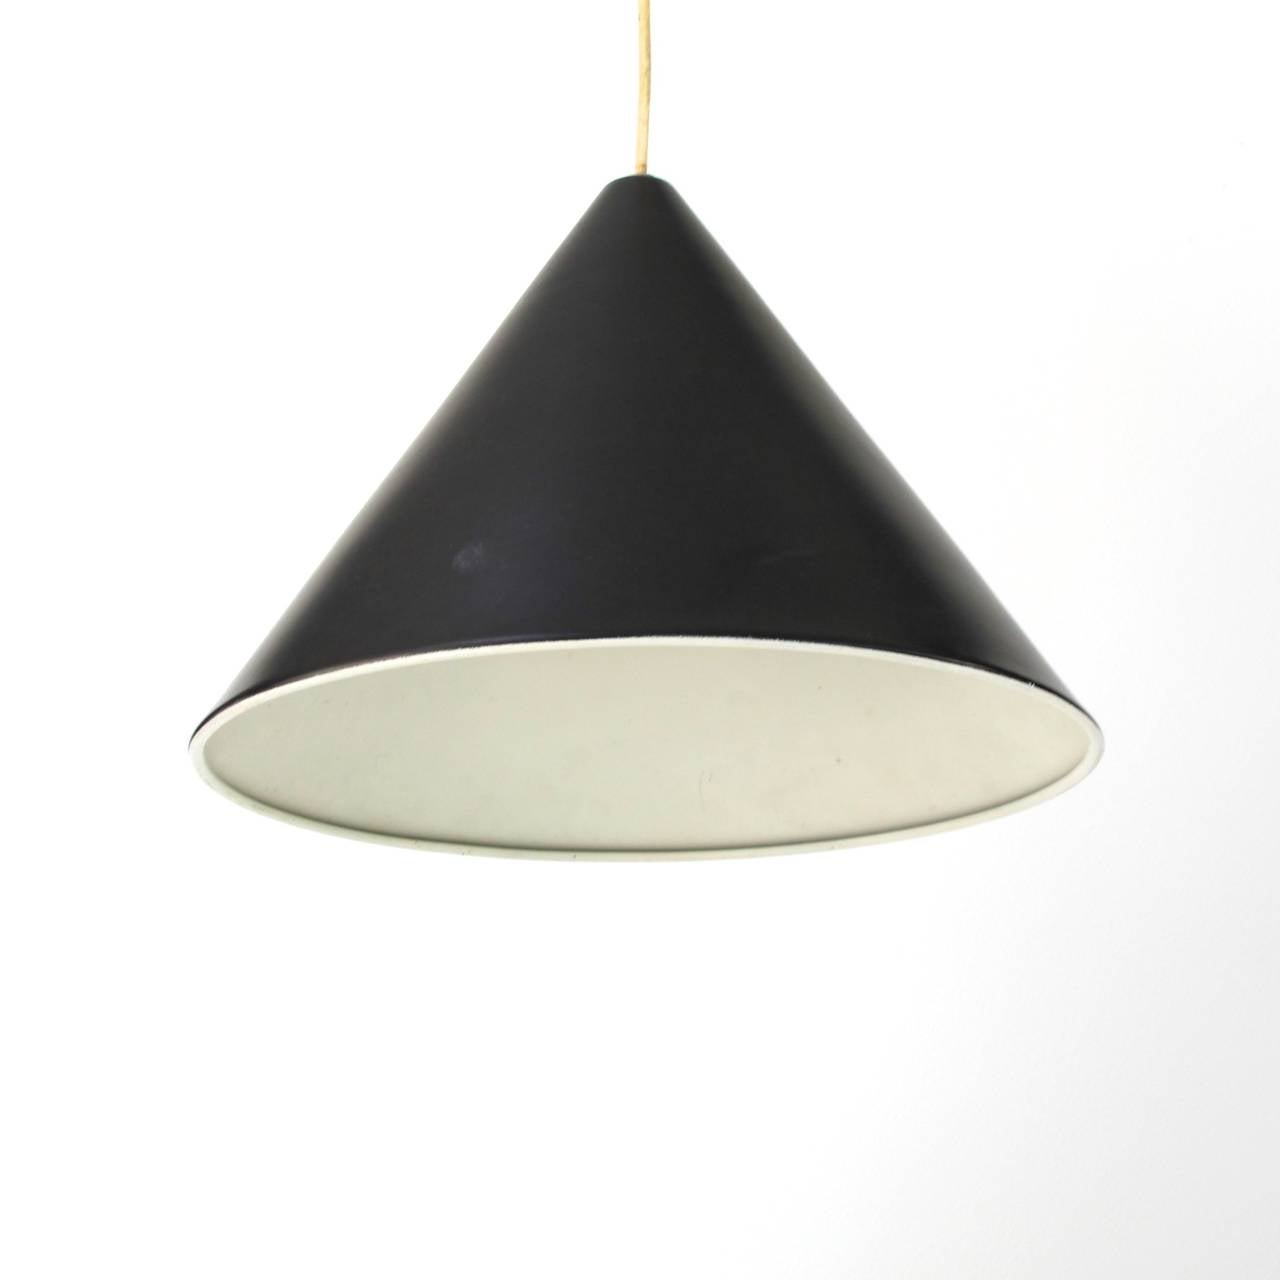 pendant billiard lamp by arne jacobsen for louis poulsen. Black Bedroom Furniture Sets. Home Design Ideas